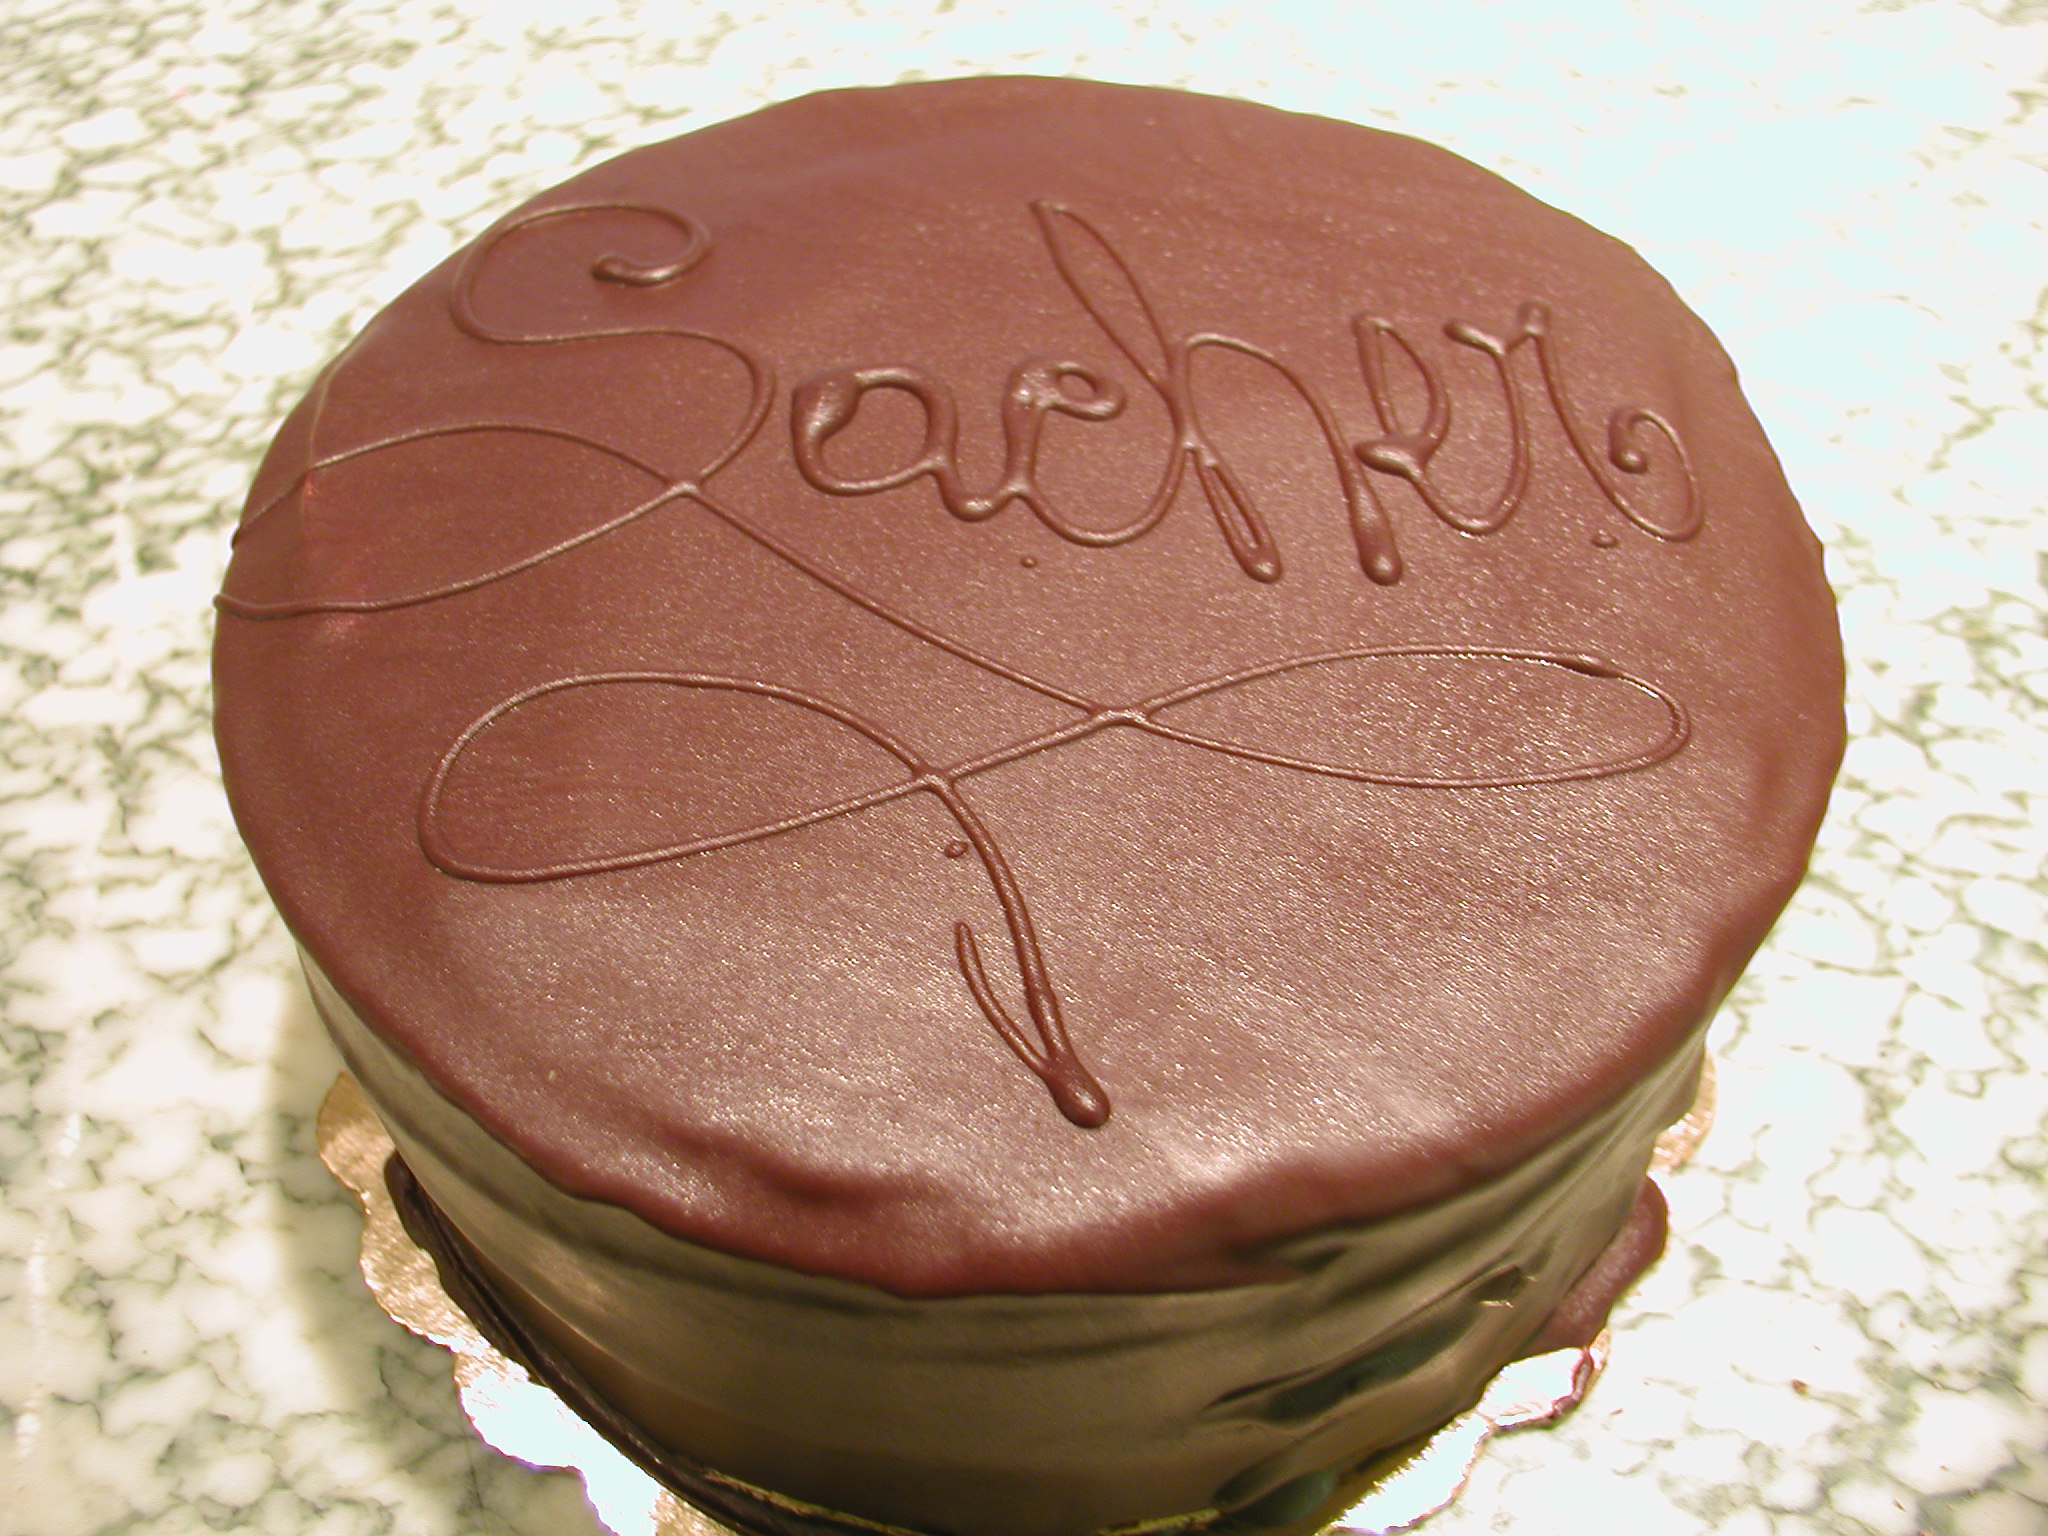 SACHER TORTE: A chocolate cake with apricot preserves between the layers, topped with a chocolate buttercream and draped chocolate ganache.